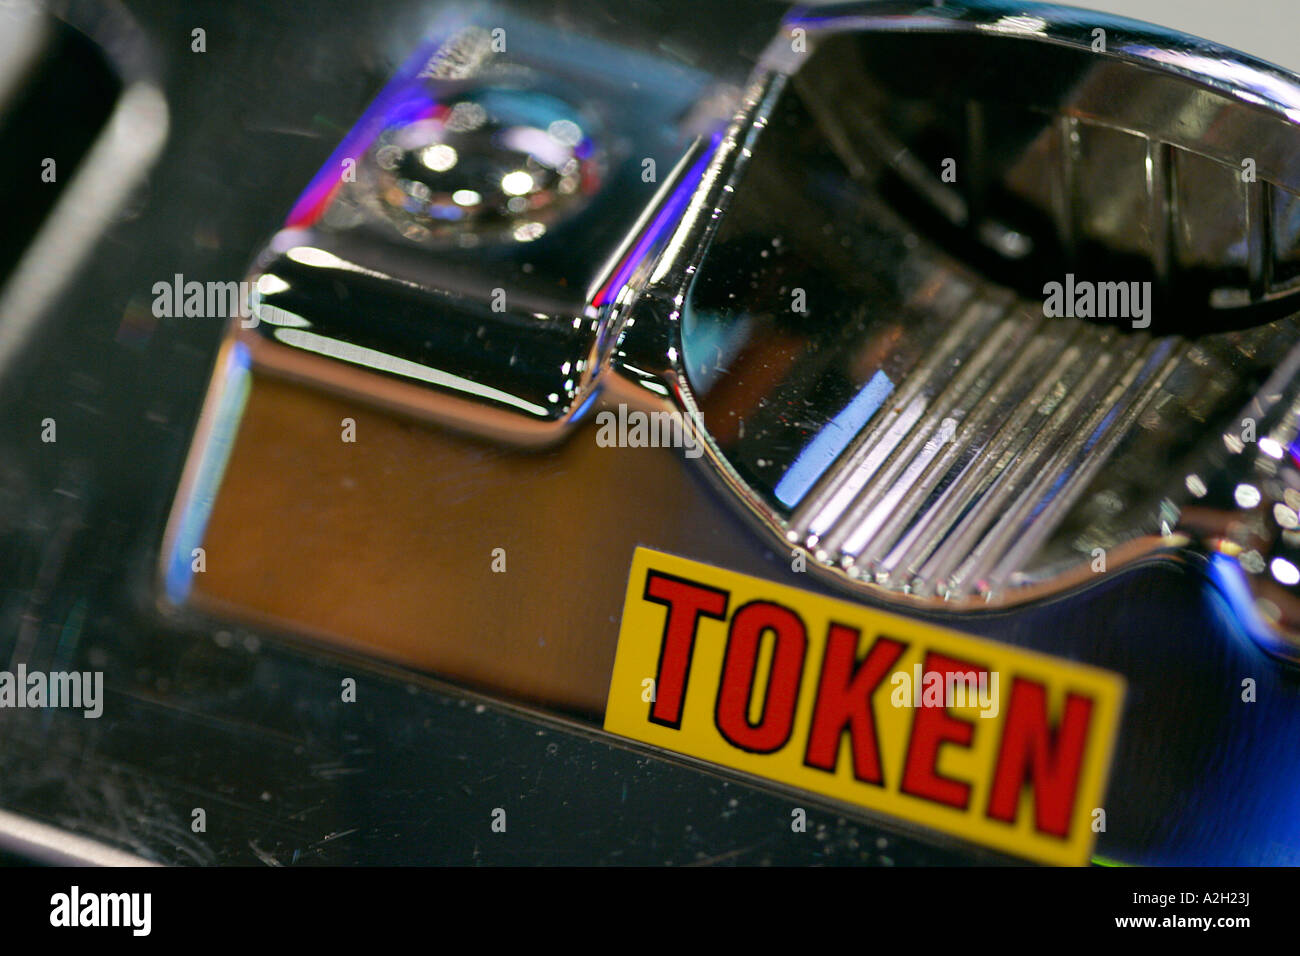 Close up of a slot machine button banknote coin token note casino